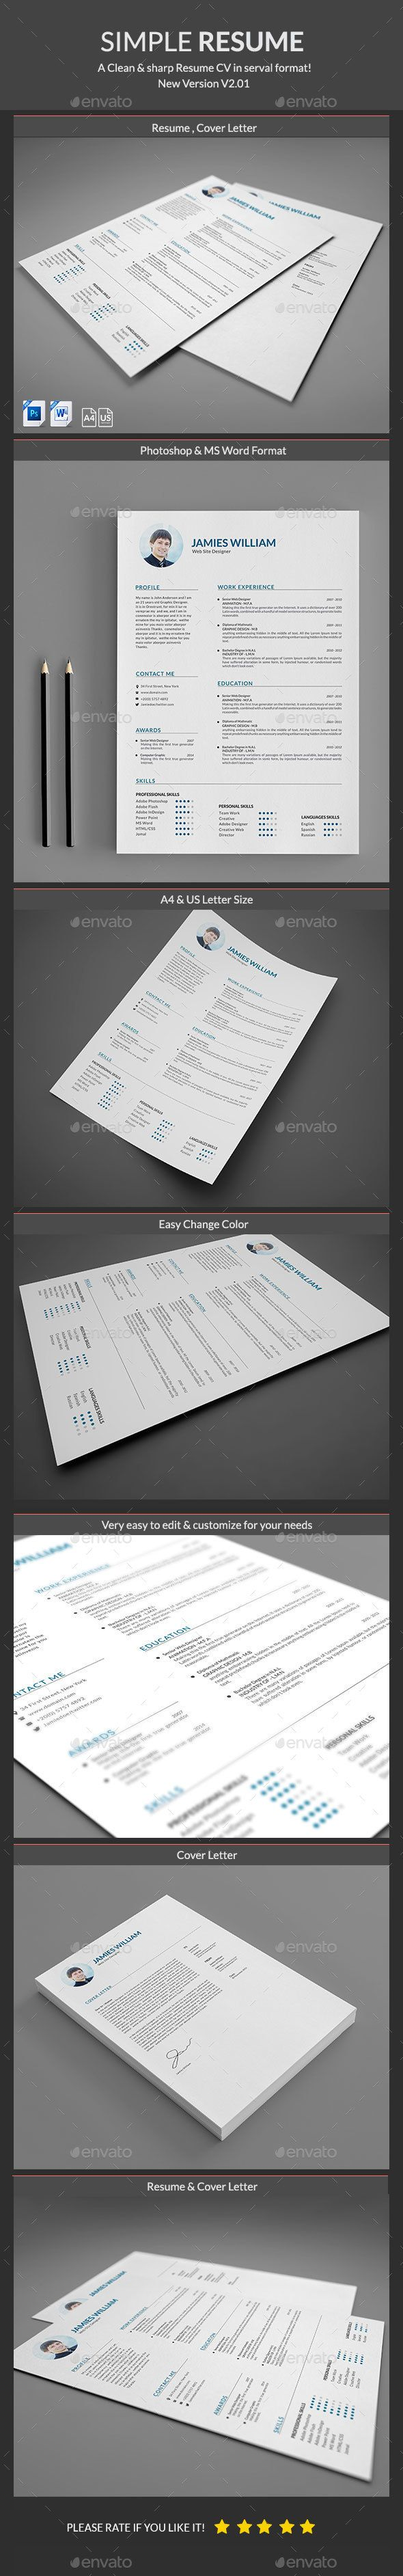 Resume Template PSD Download here httpgraphicrivernetitem 212